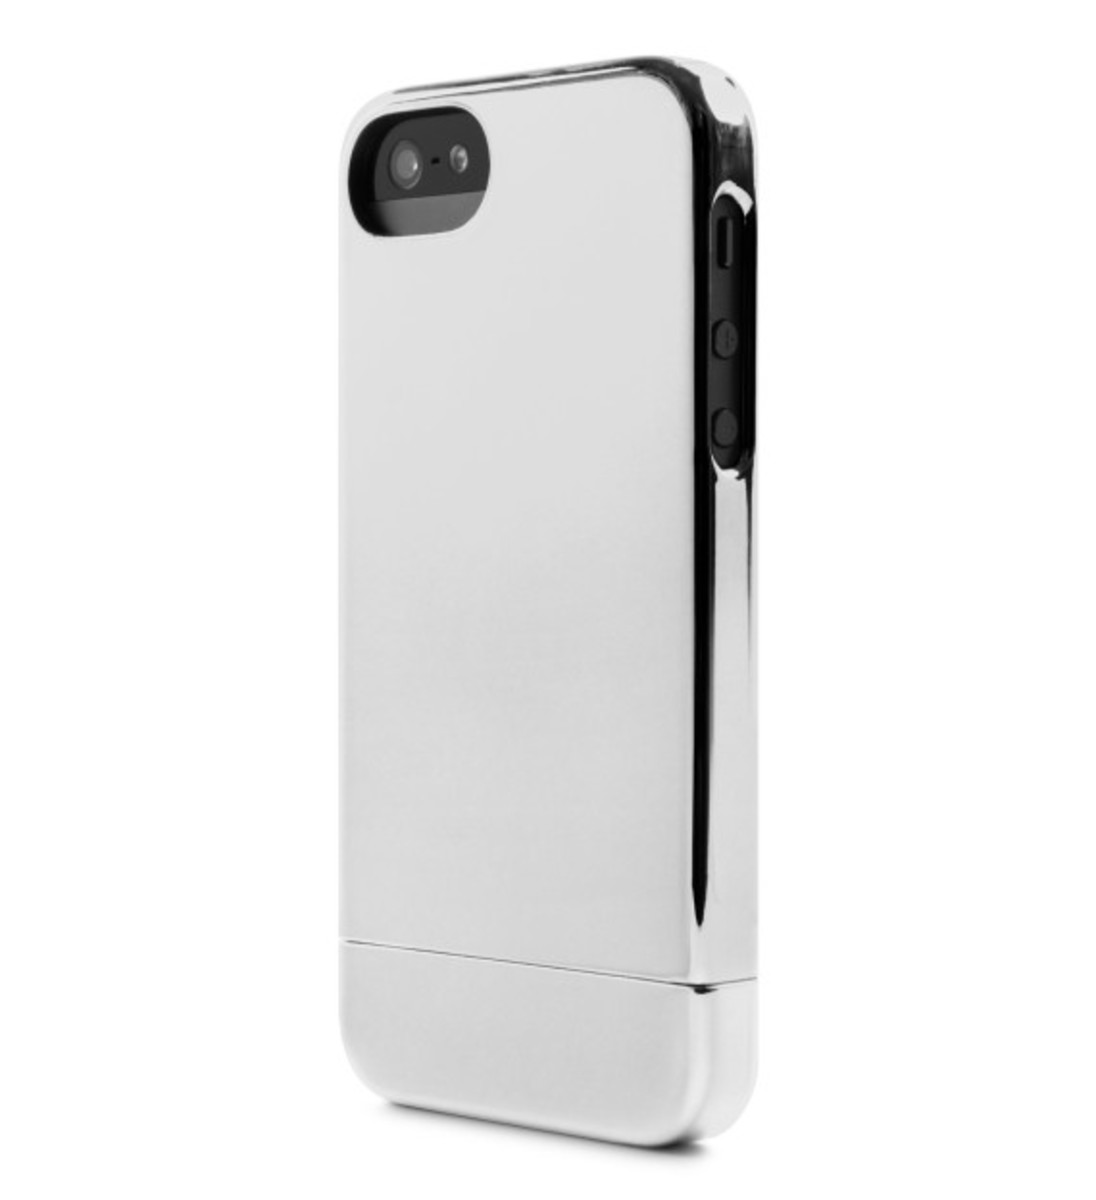 incase-chrome-slider-case-for-iphone-5-f